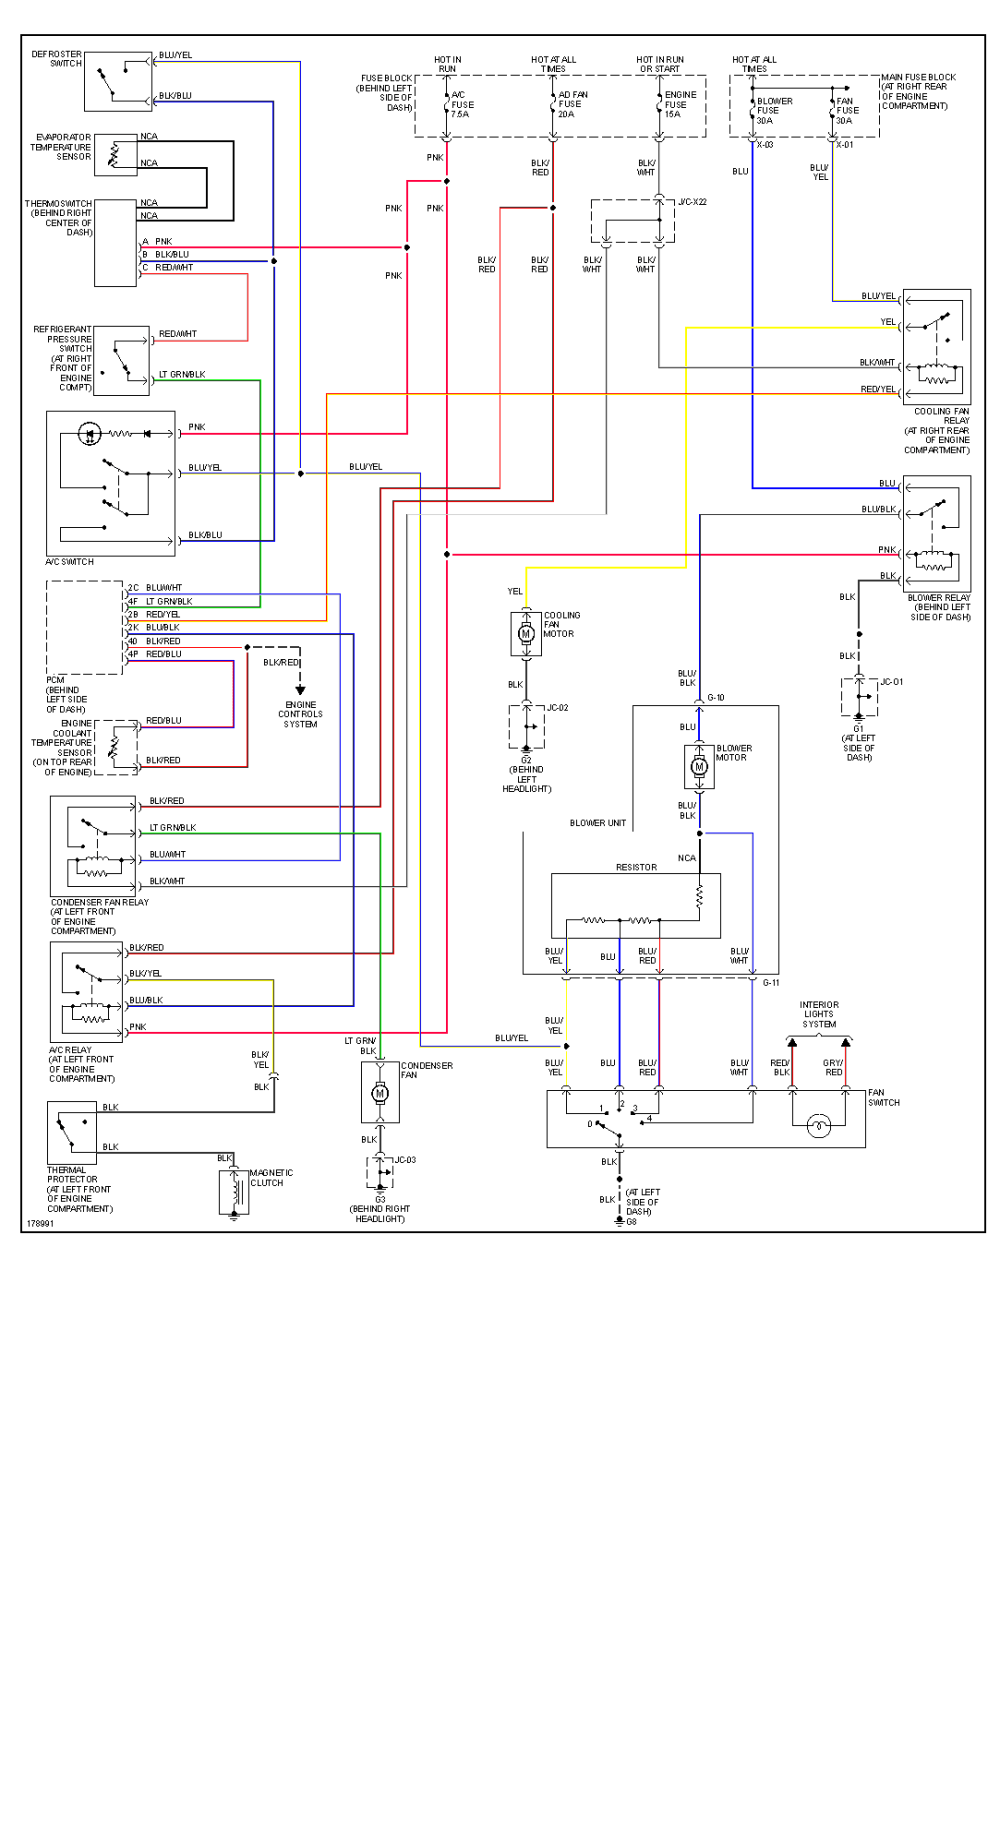 medium resolution of 2003 miata wiring diagram wiring diagrams konsult 2003 miata wiring diagram